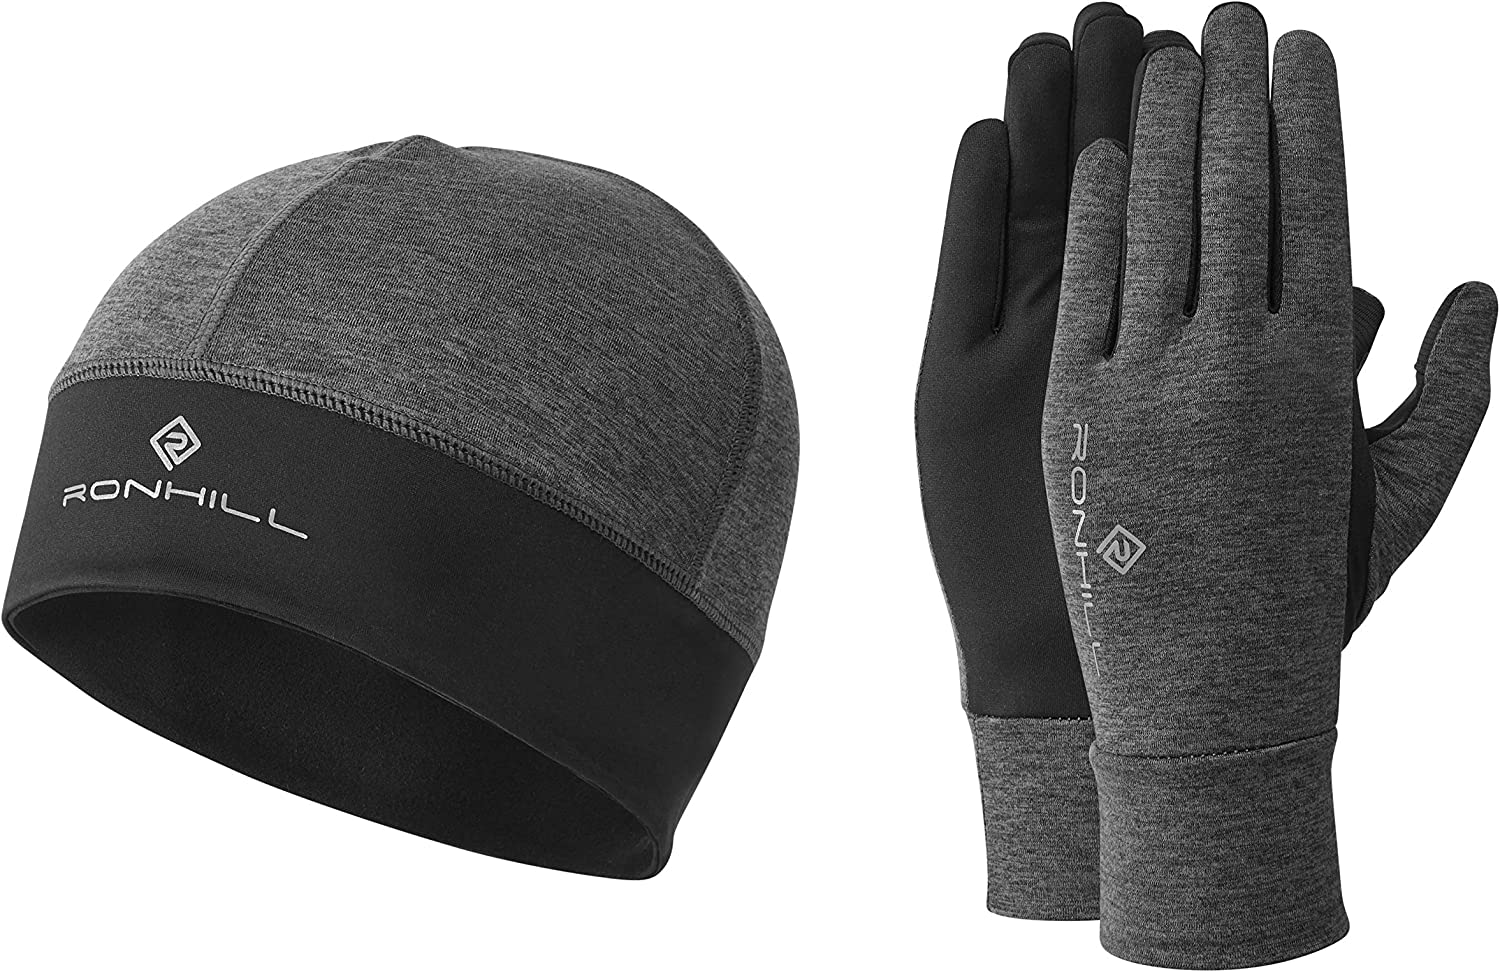 AW19 Ronhill Contour Beanie and Glove Set